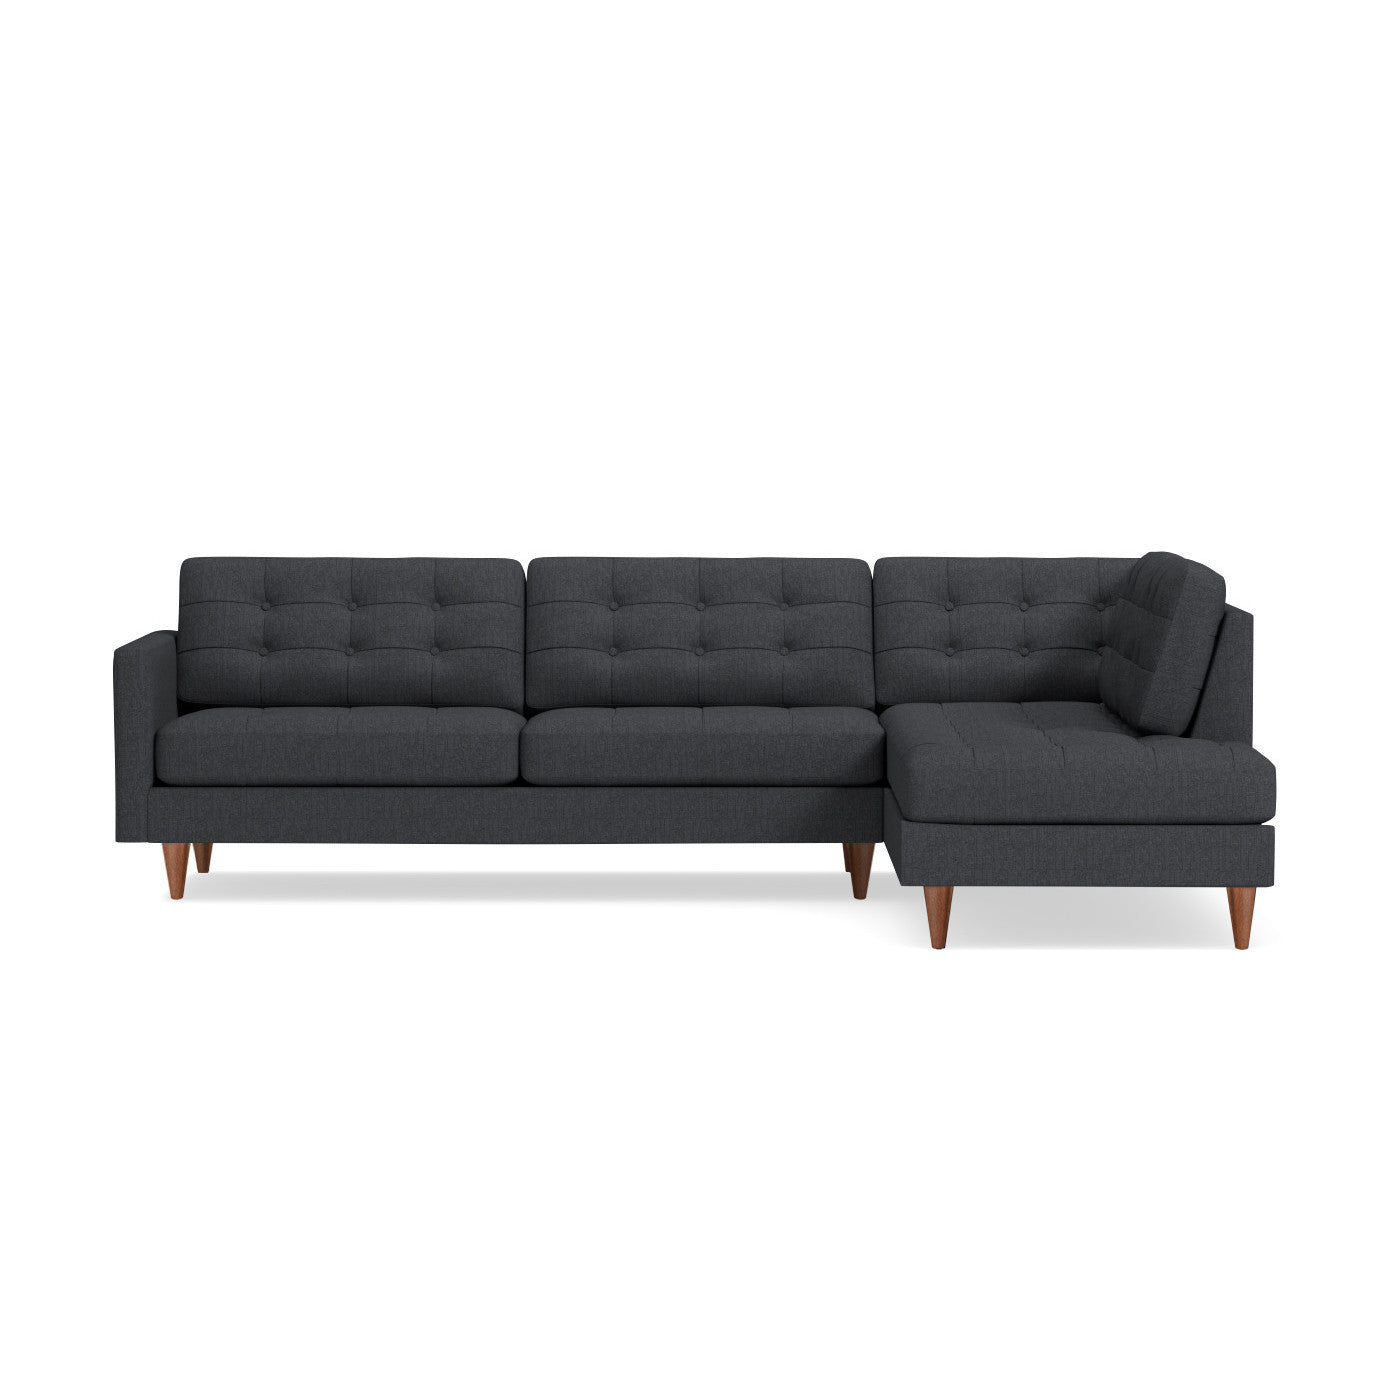 Lexington 2pc Sectional Sofa  sc 1 st  Apt2B : charcoal sectional with chaise - Sectionals, Sofas & Couches